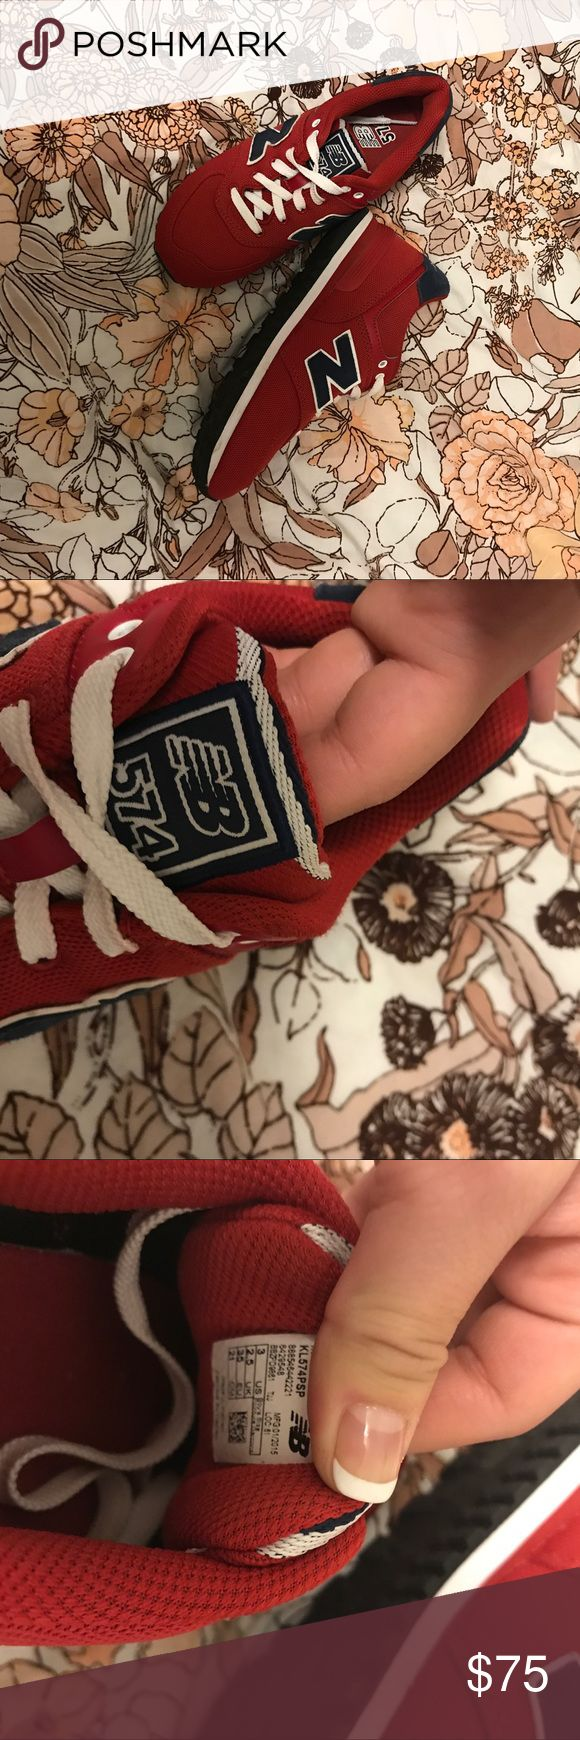 RED WHITE AND BLUE NEW BALANCE Red white and blue sneakers from NB! Super cute and comfortable I get compliments wherever I go from both girls and guys haha Only worn a couple of times but they're in excellent used condition These are youth chores but I'm a size 6 and they fit perfectly Urban Outfitters Shoes